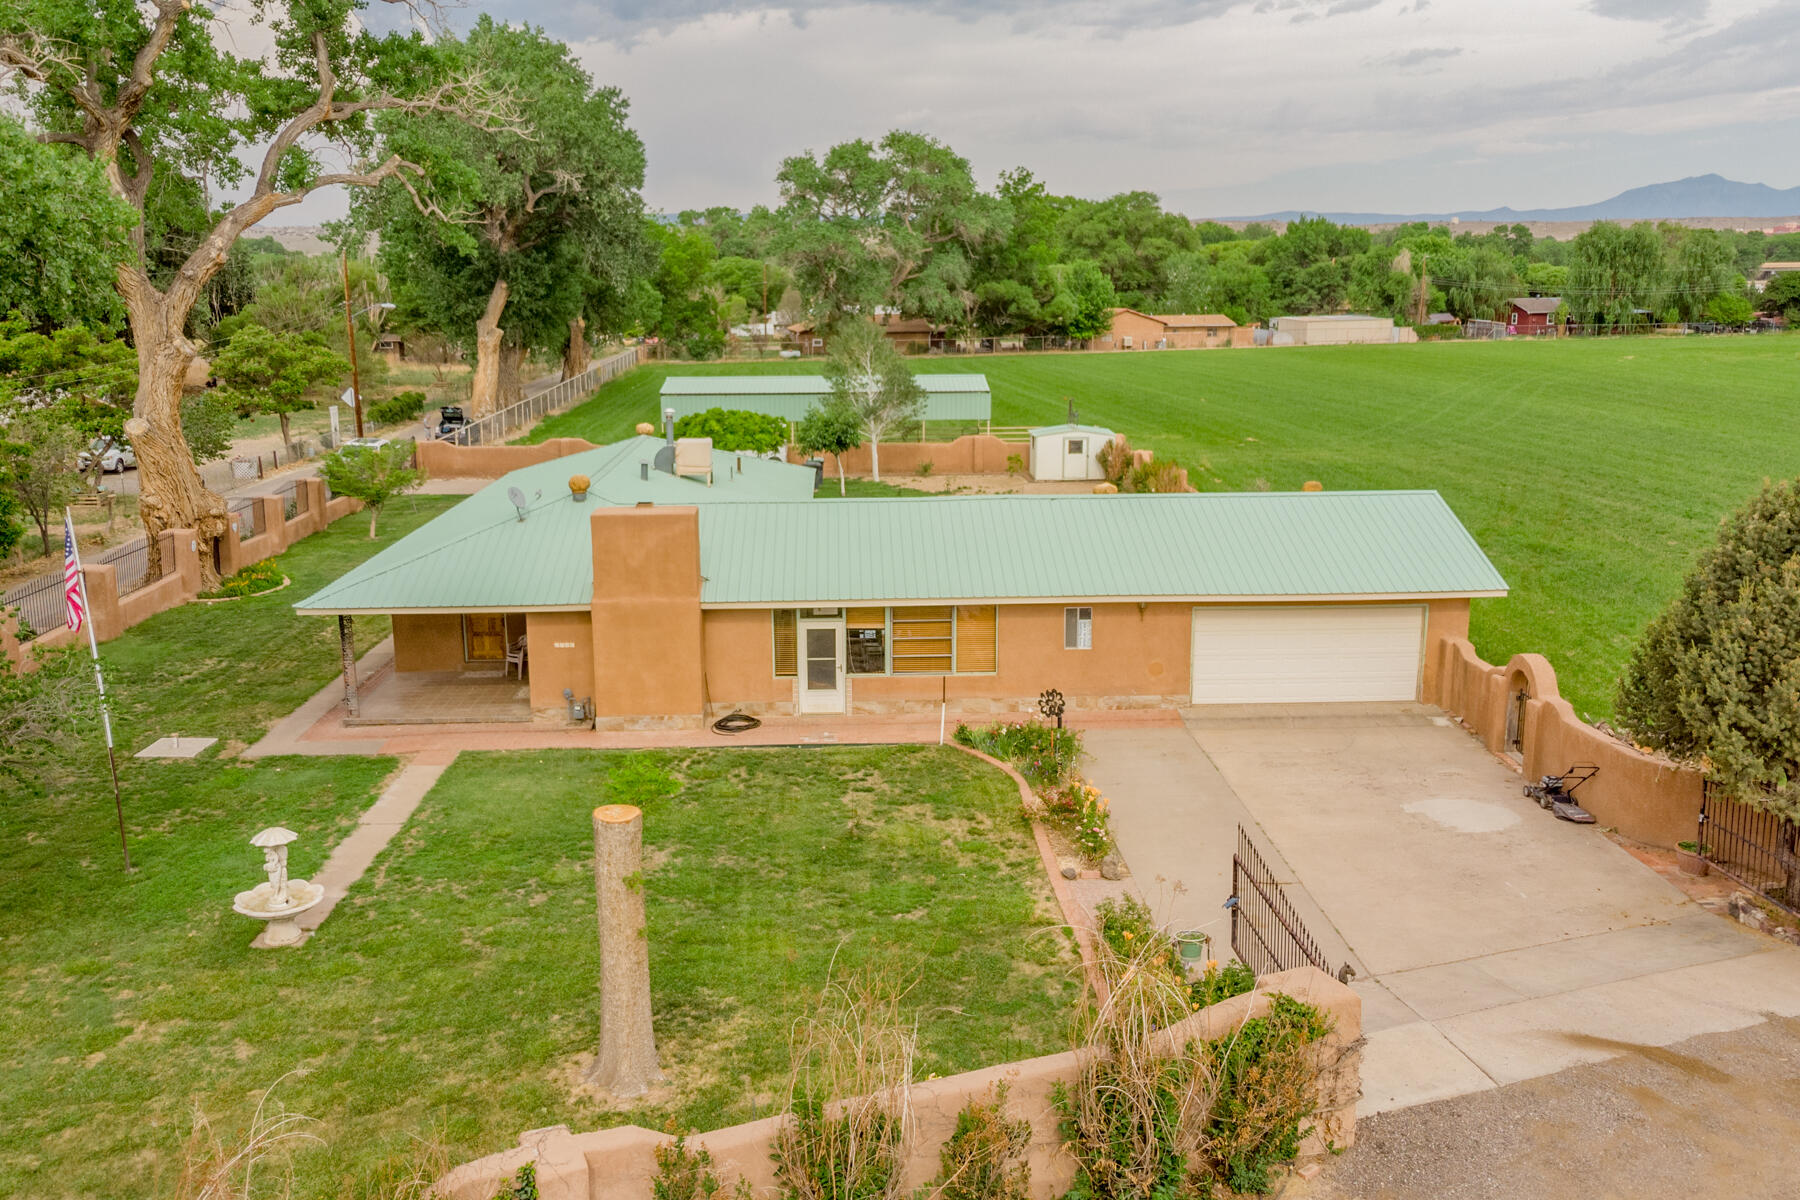 Come and look at this amazing property with 4.5 acres and with 1907 water rights and ditch access. Currently city water in the street. Using well water for home. This property has easy access to I 25. This property can also be accessed off the Malpais Rd. The possibilities with this property are endless. Book your appointment today.